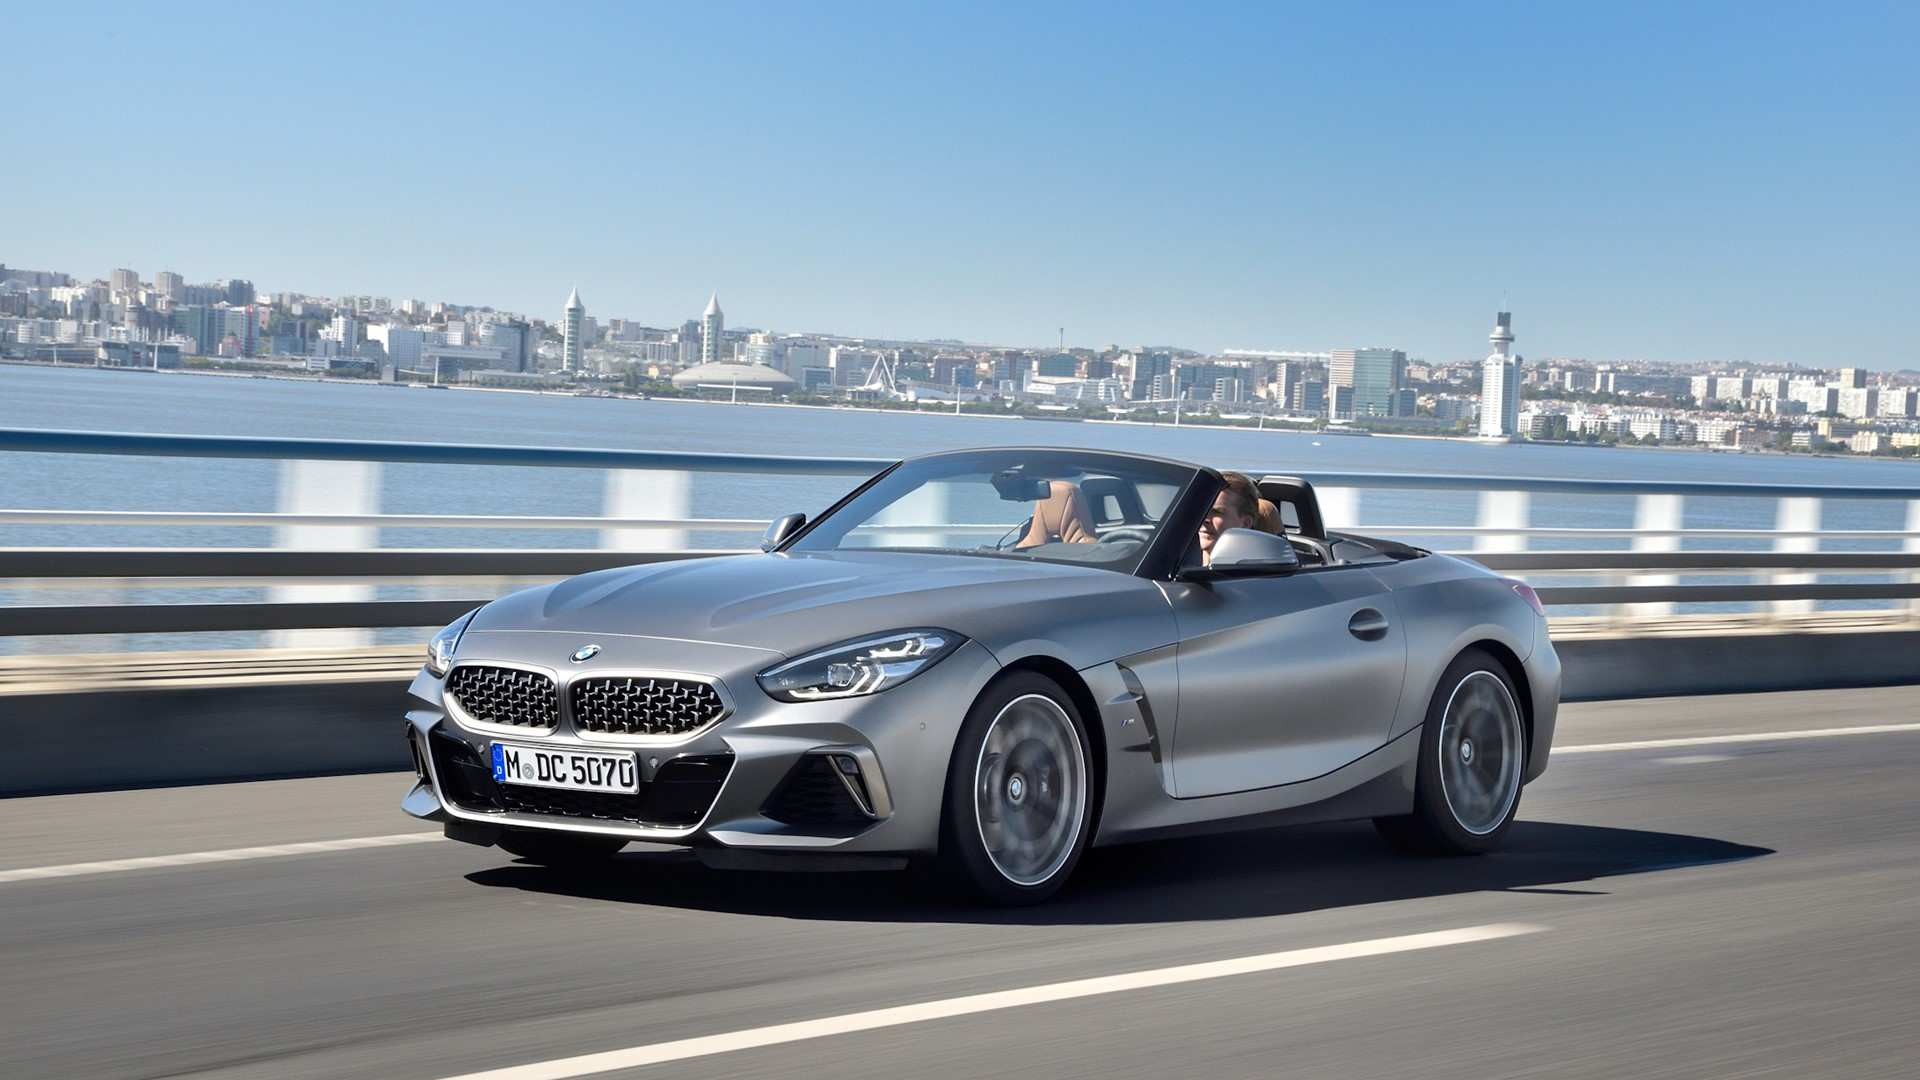 50 New BMW Z4 Coupe 2020 Images by BMW Z4 Coupe 2020